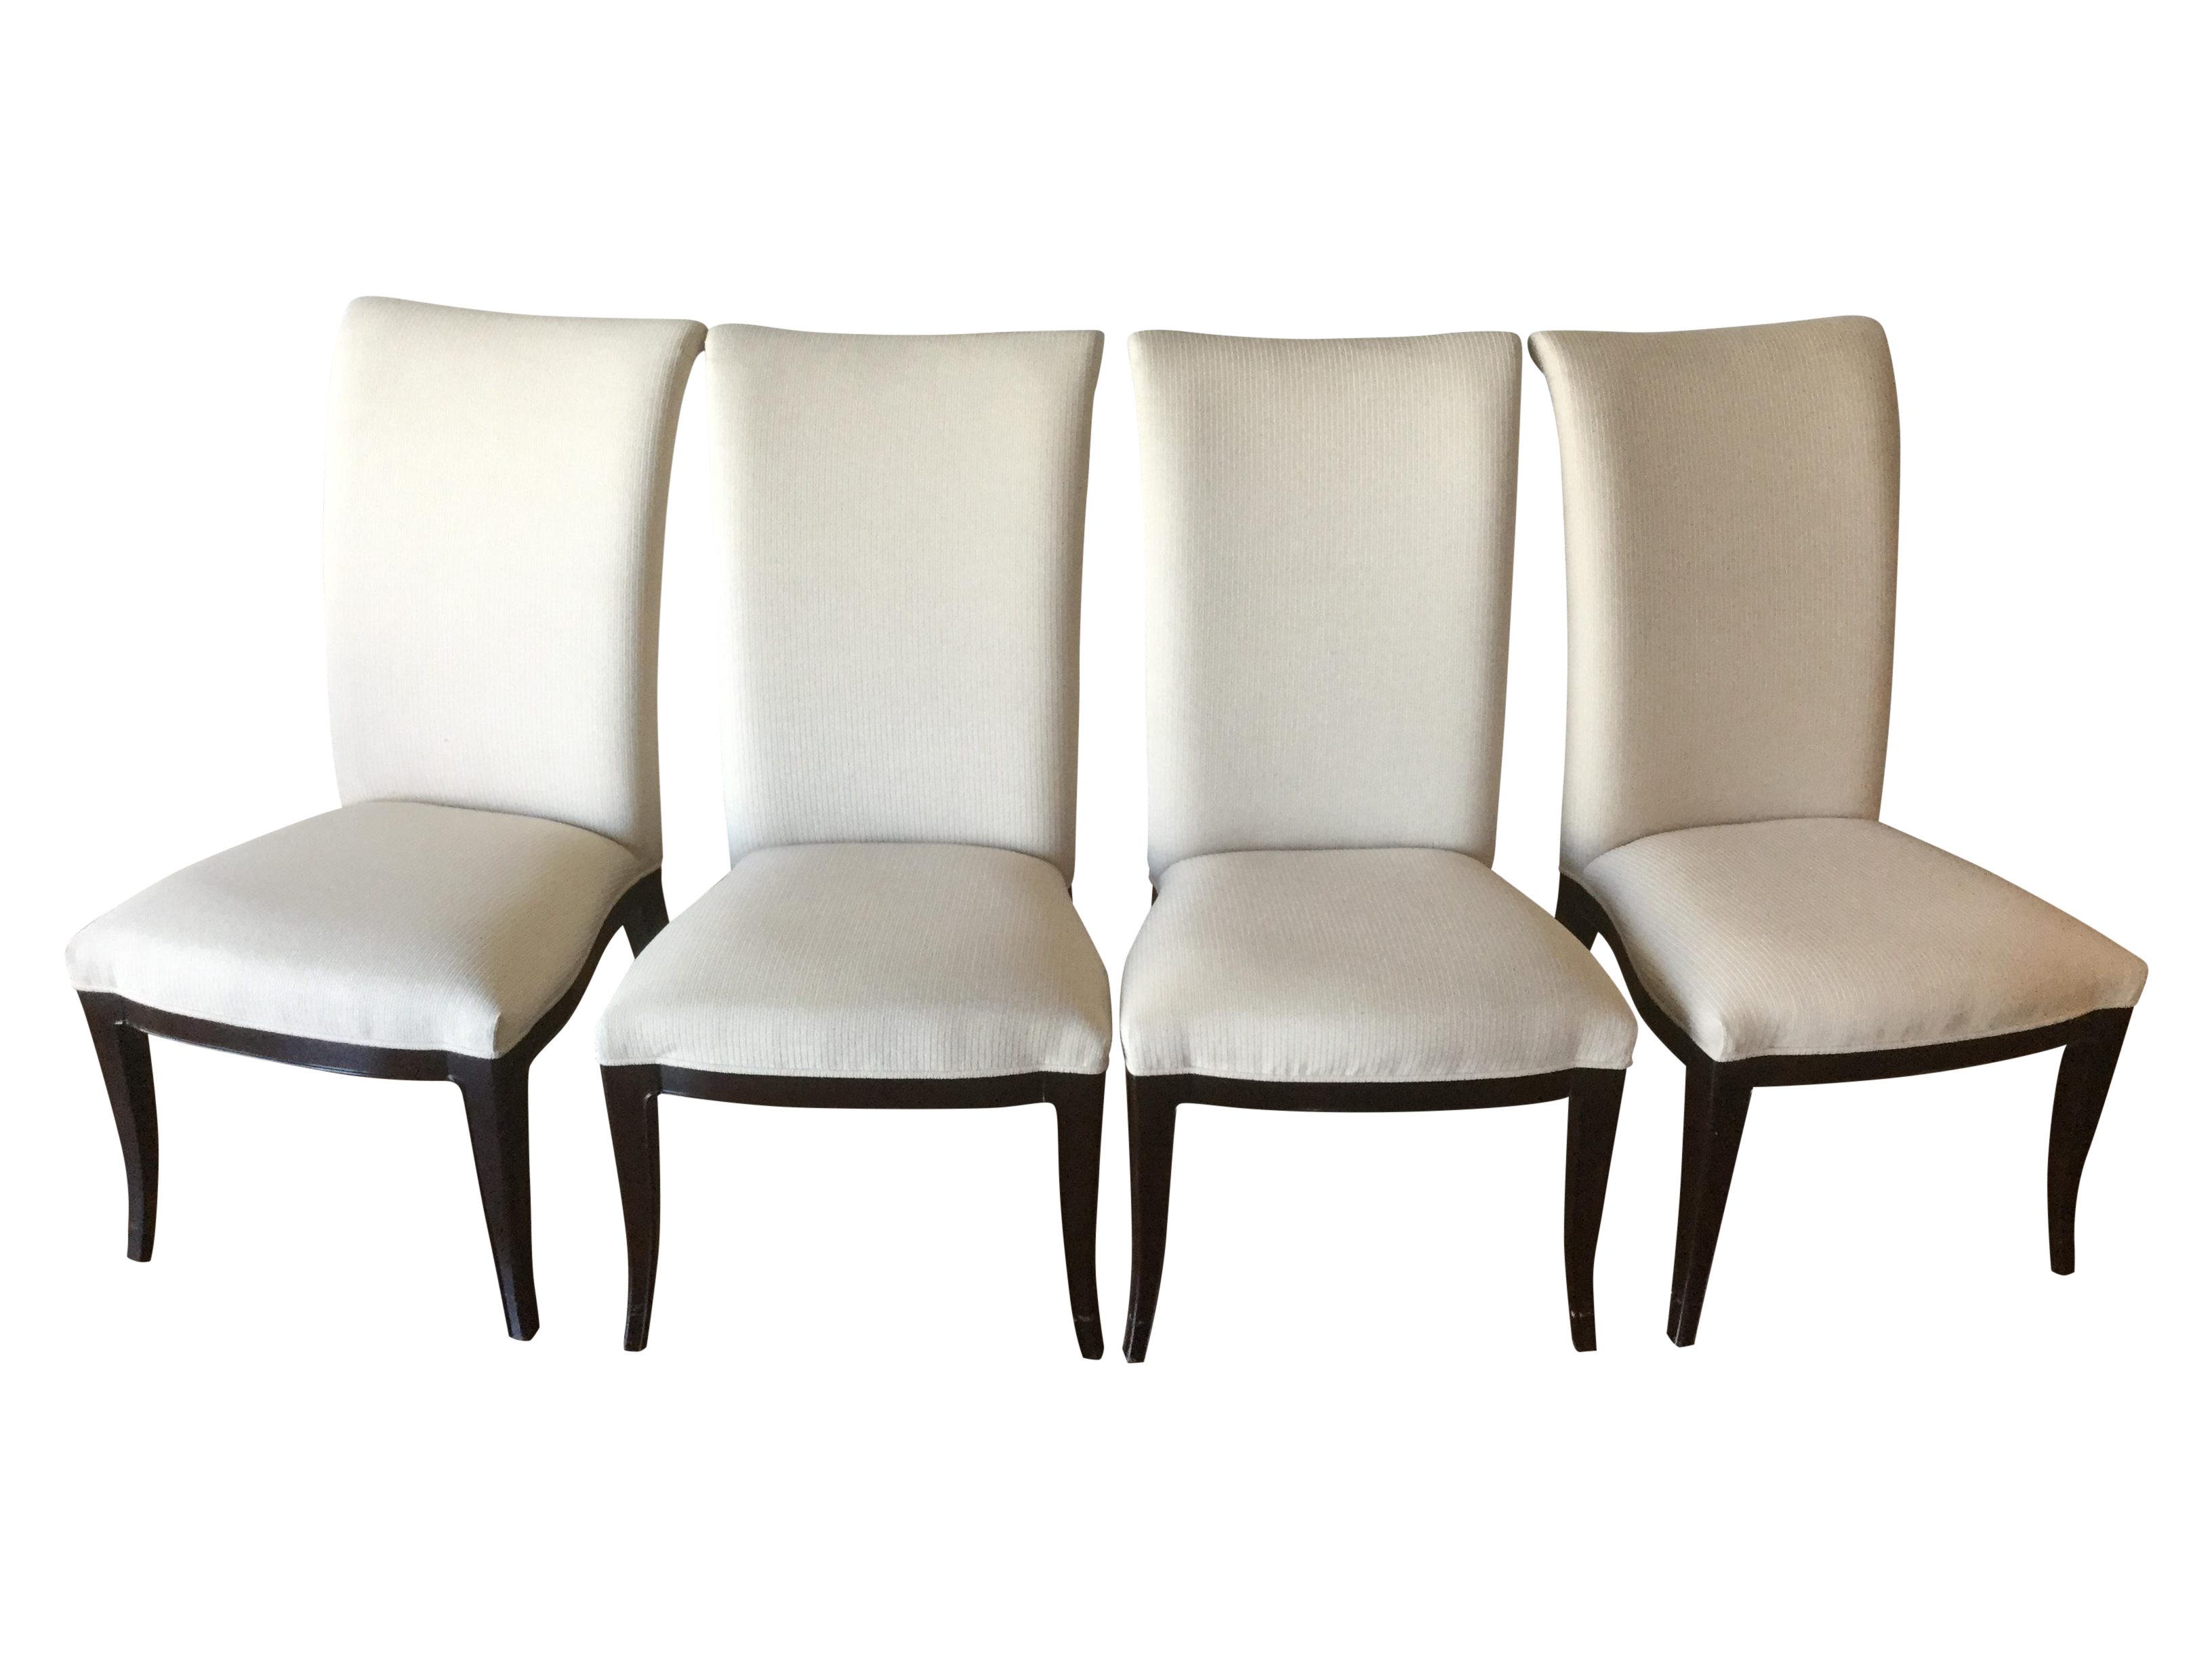 Thomasville Nocturne Upholstered Dining Chairs S/4